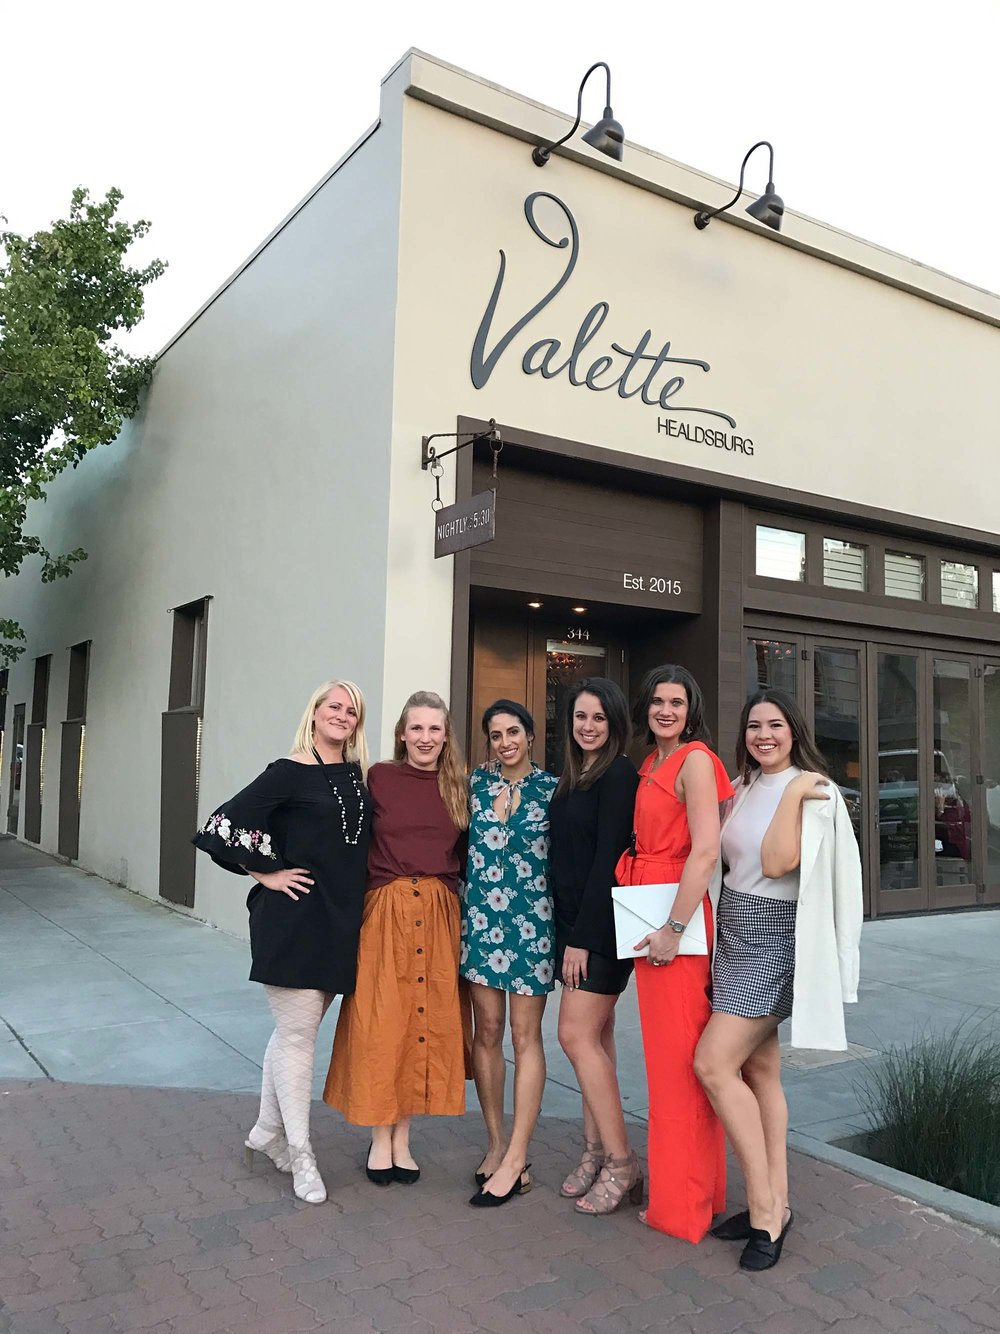 Dinner at Valette Restaurant during our Healdsburg Bloggers weekend